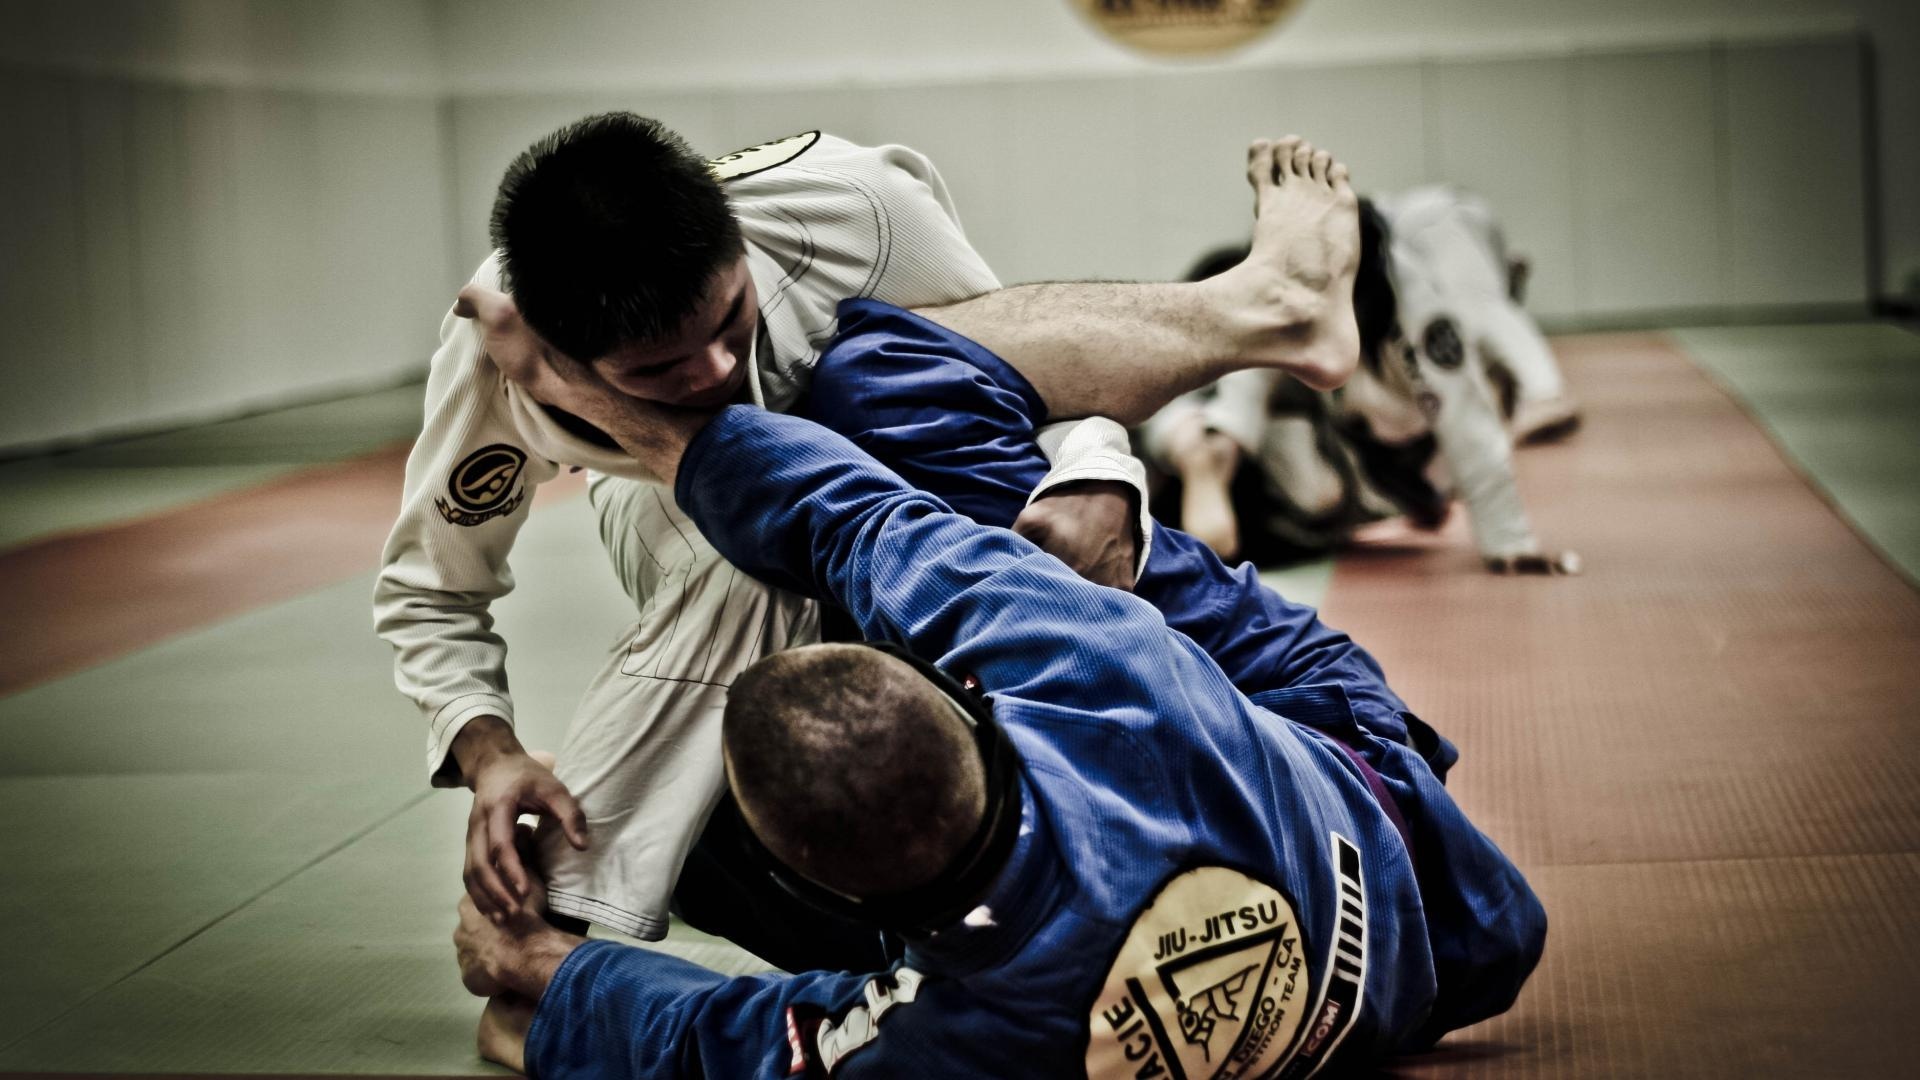 Sports fight gracie jitsu jiu